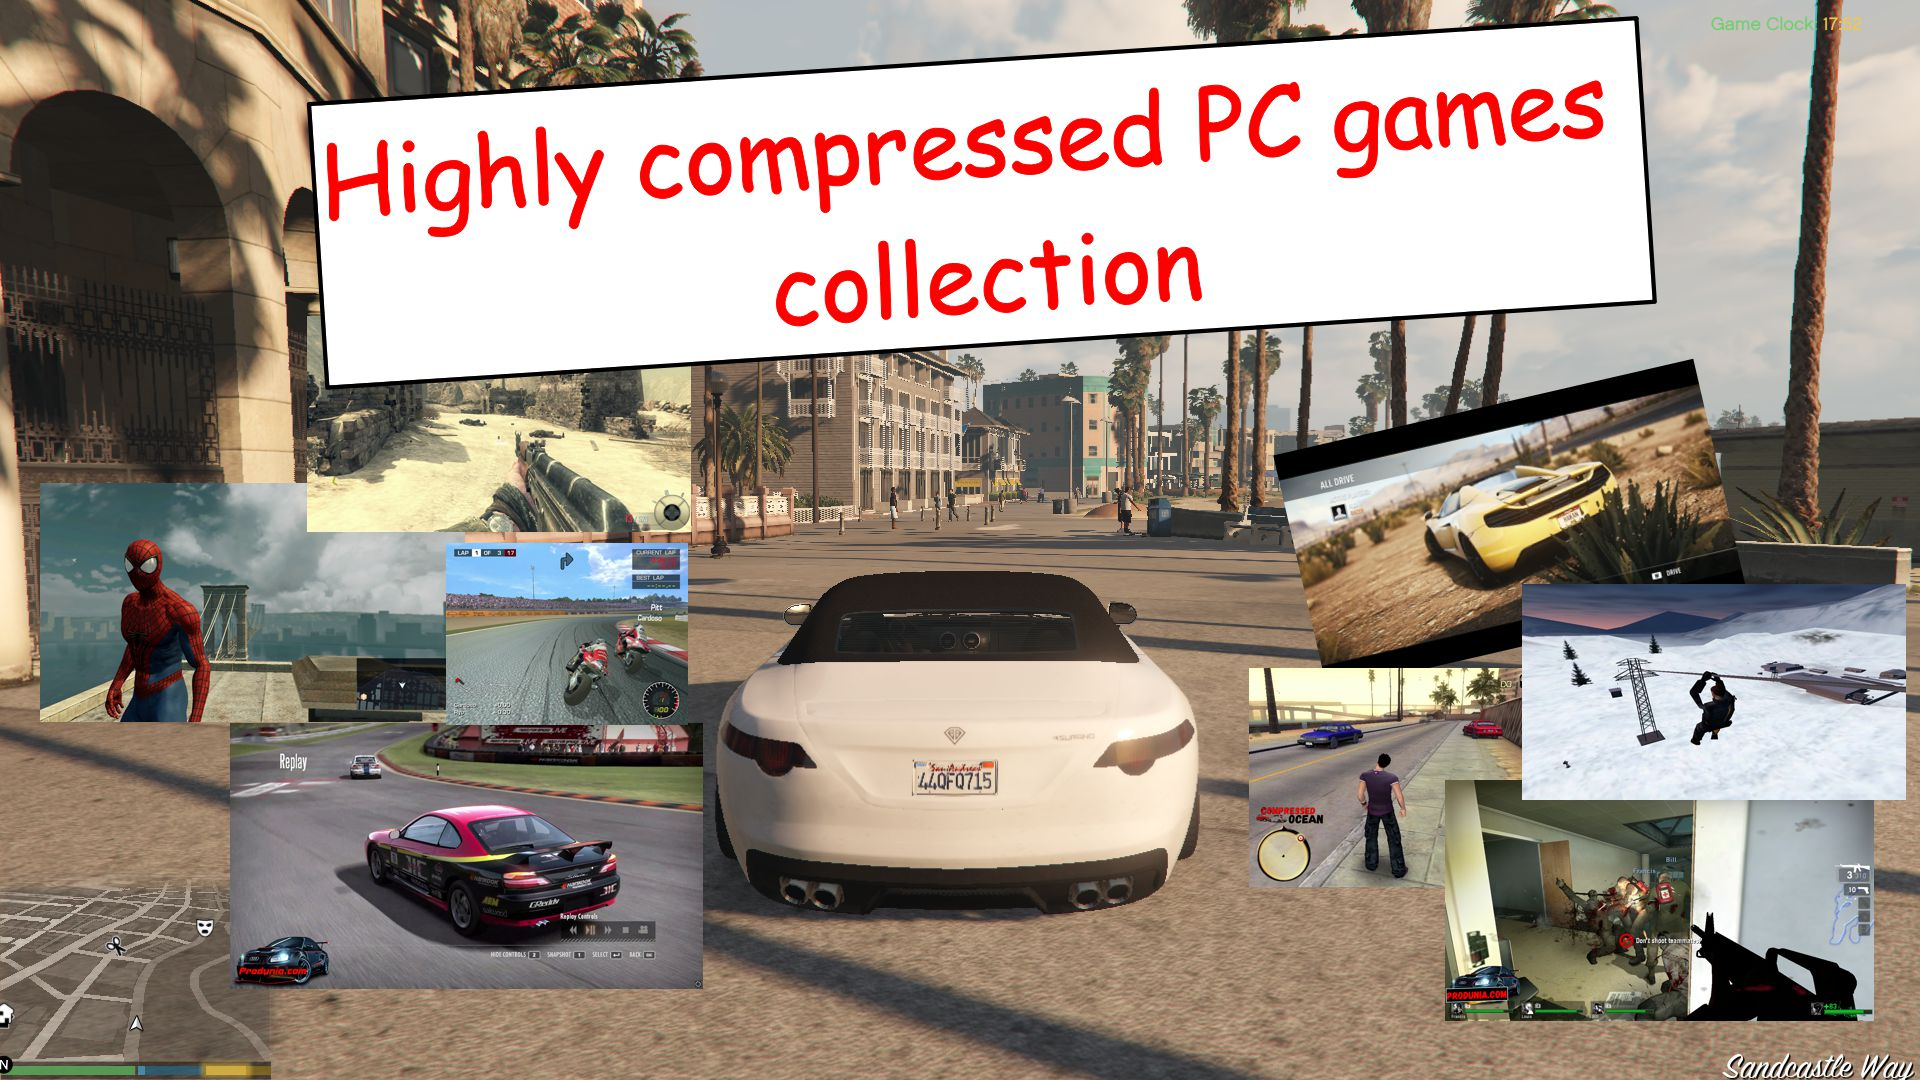 Download Highly compressed PC games - Complete collection